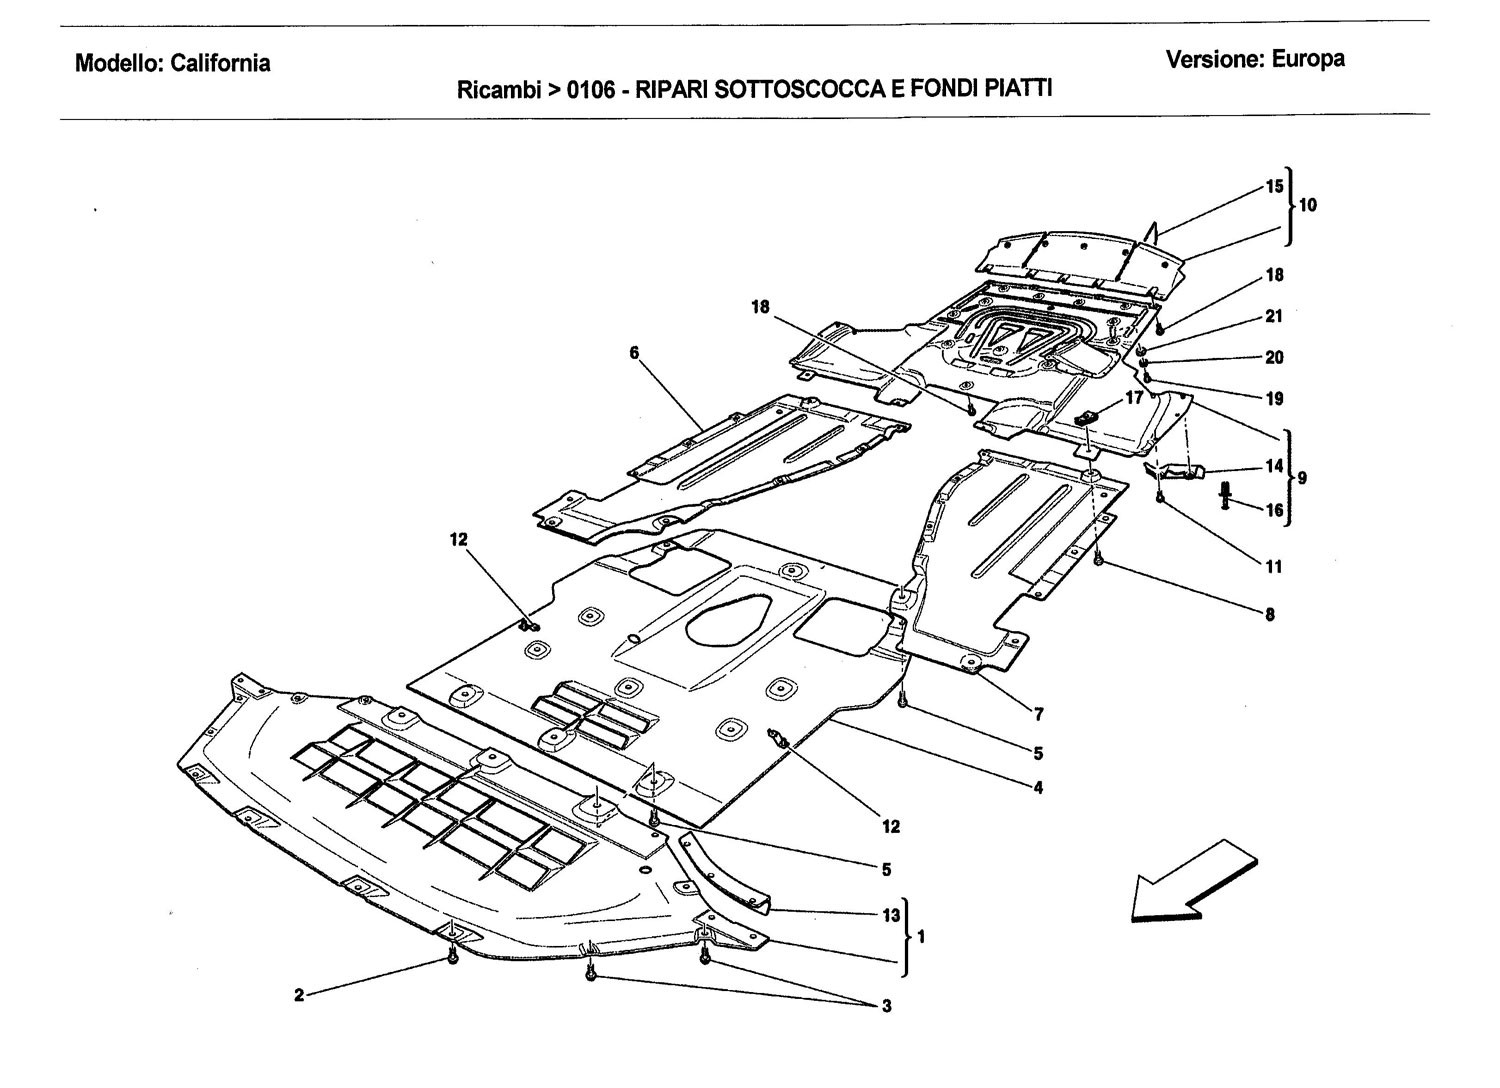 UNDERBODY SHIELDS AND FLAT UNDERTRAY SECTIONS